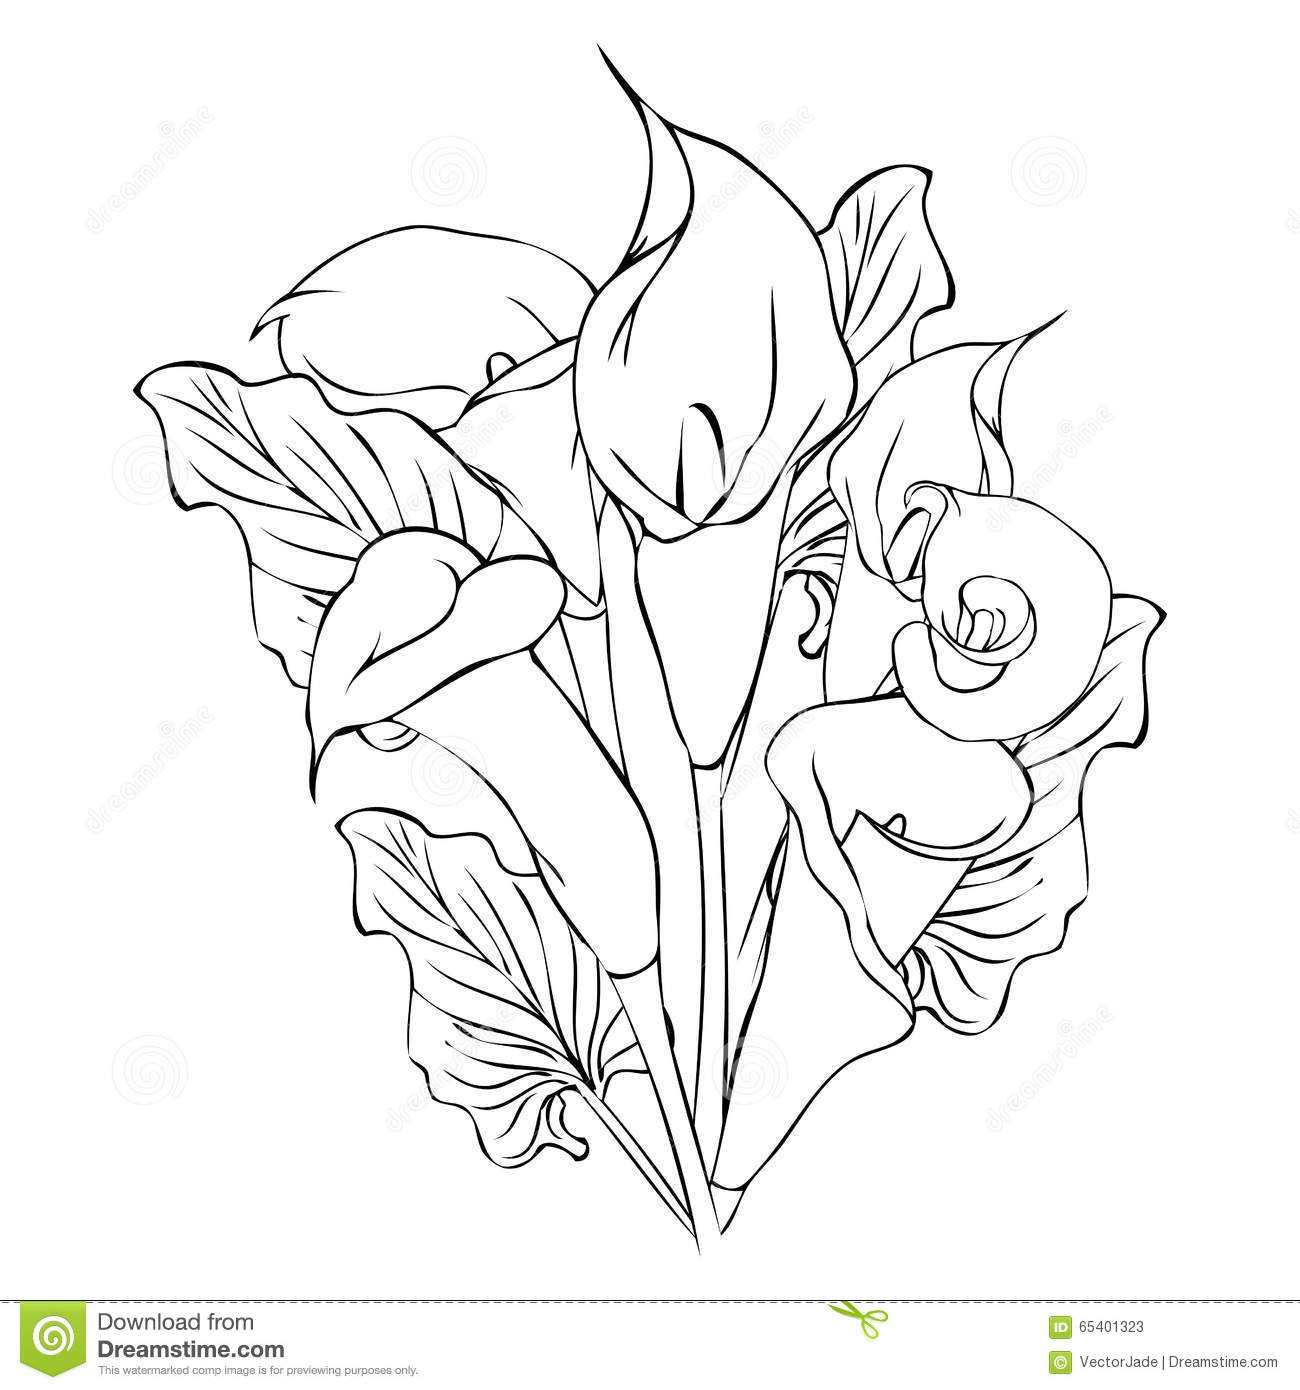 Lily Line Drawing at GetDrawings.com | Free for personal use Lily ...